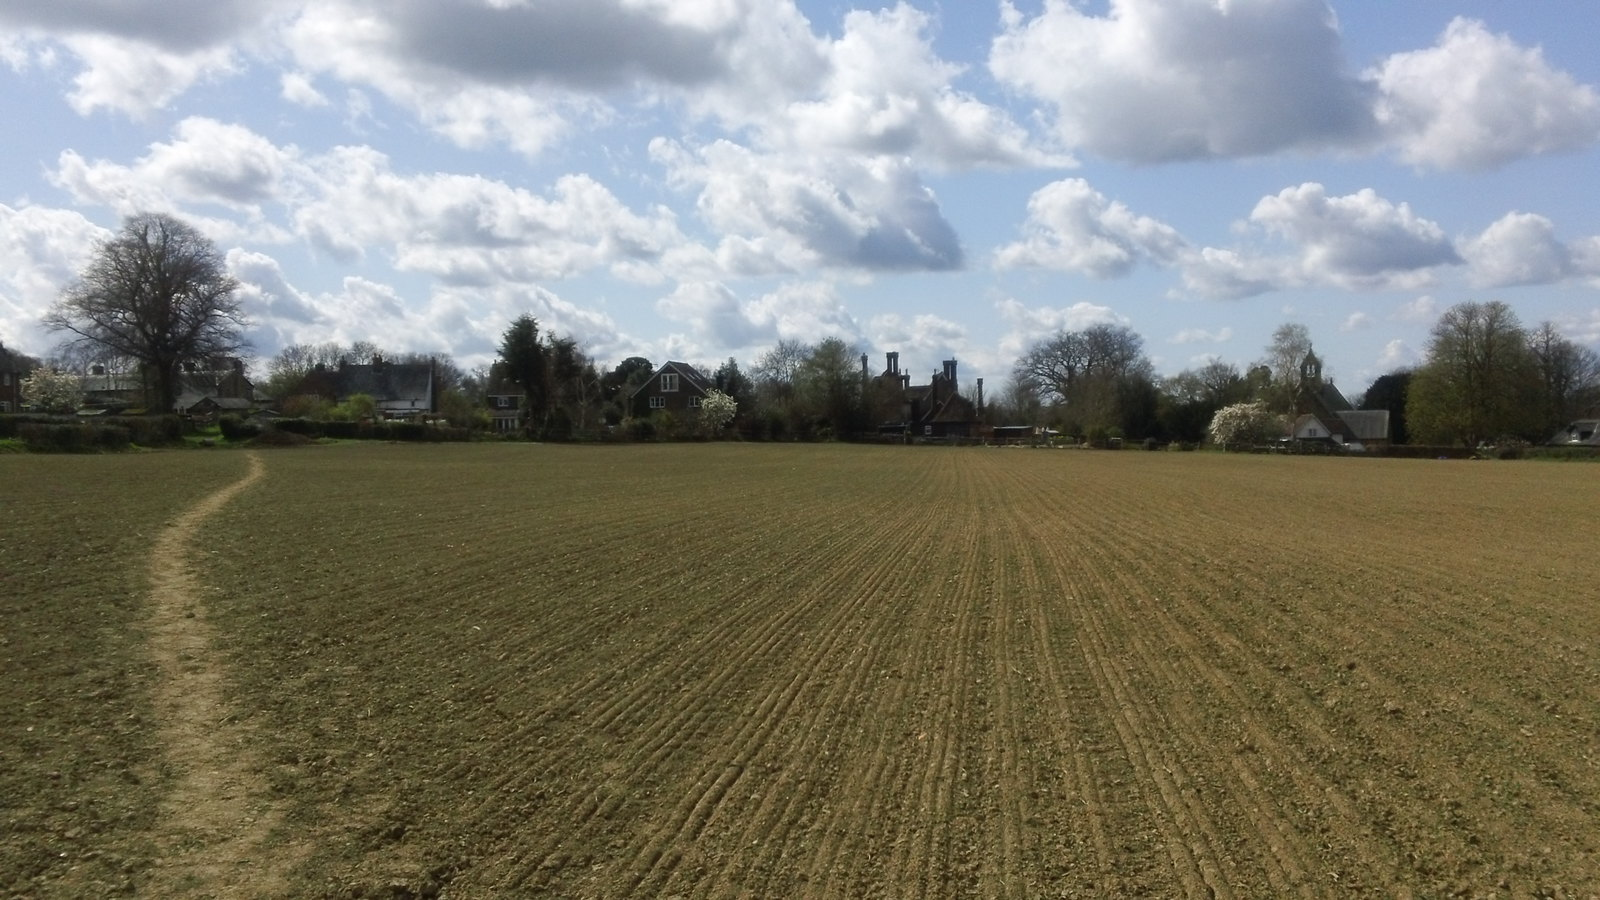 Just one more field to a warm welcome,,,,not Fordcombe, Kent